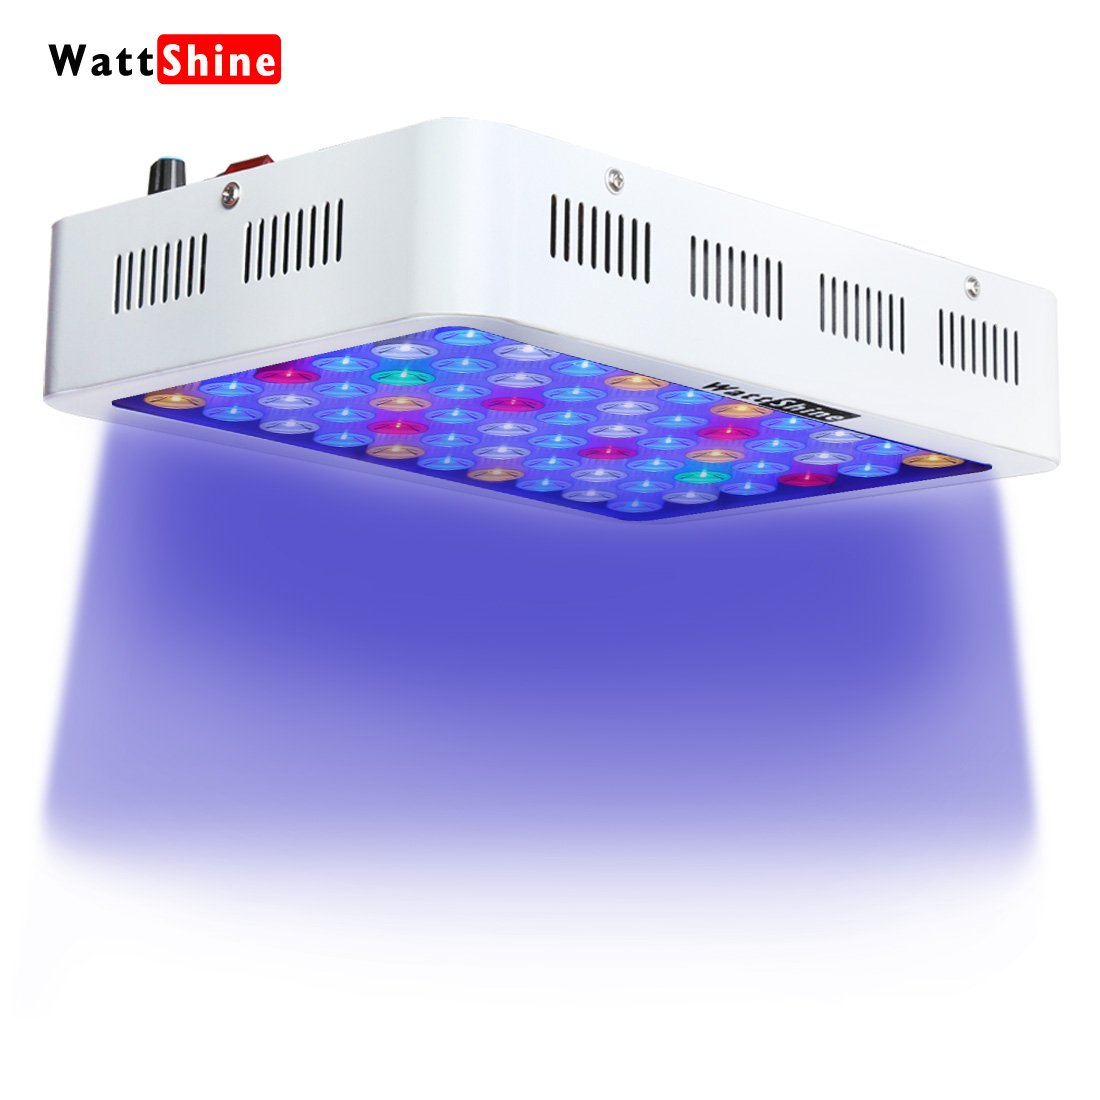 LED Aquarium Light Dimmable 180W Full Spectrum for Coral Reef Grow, Plants Fish Tank Aquarium Decorations Include White & Blue